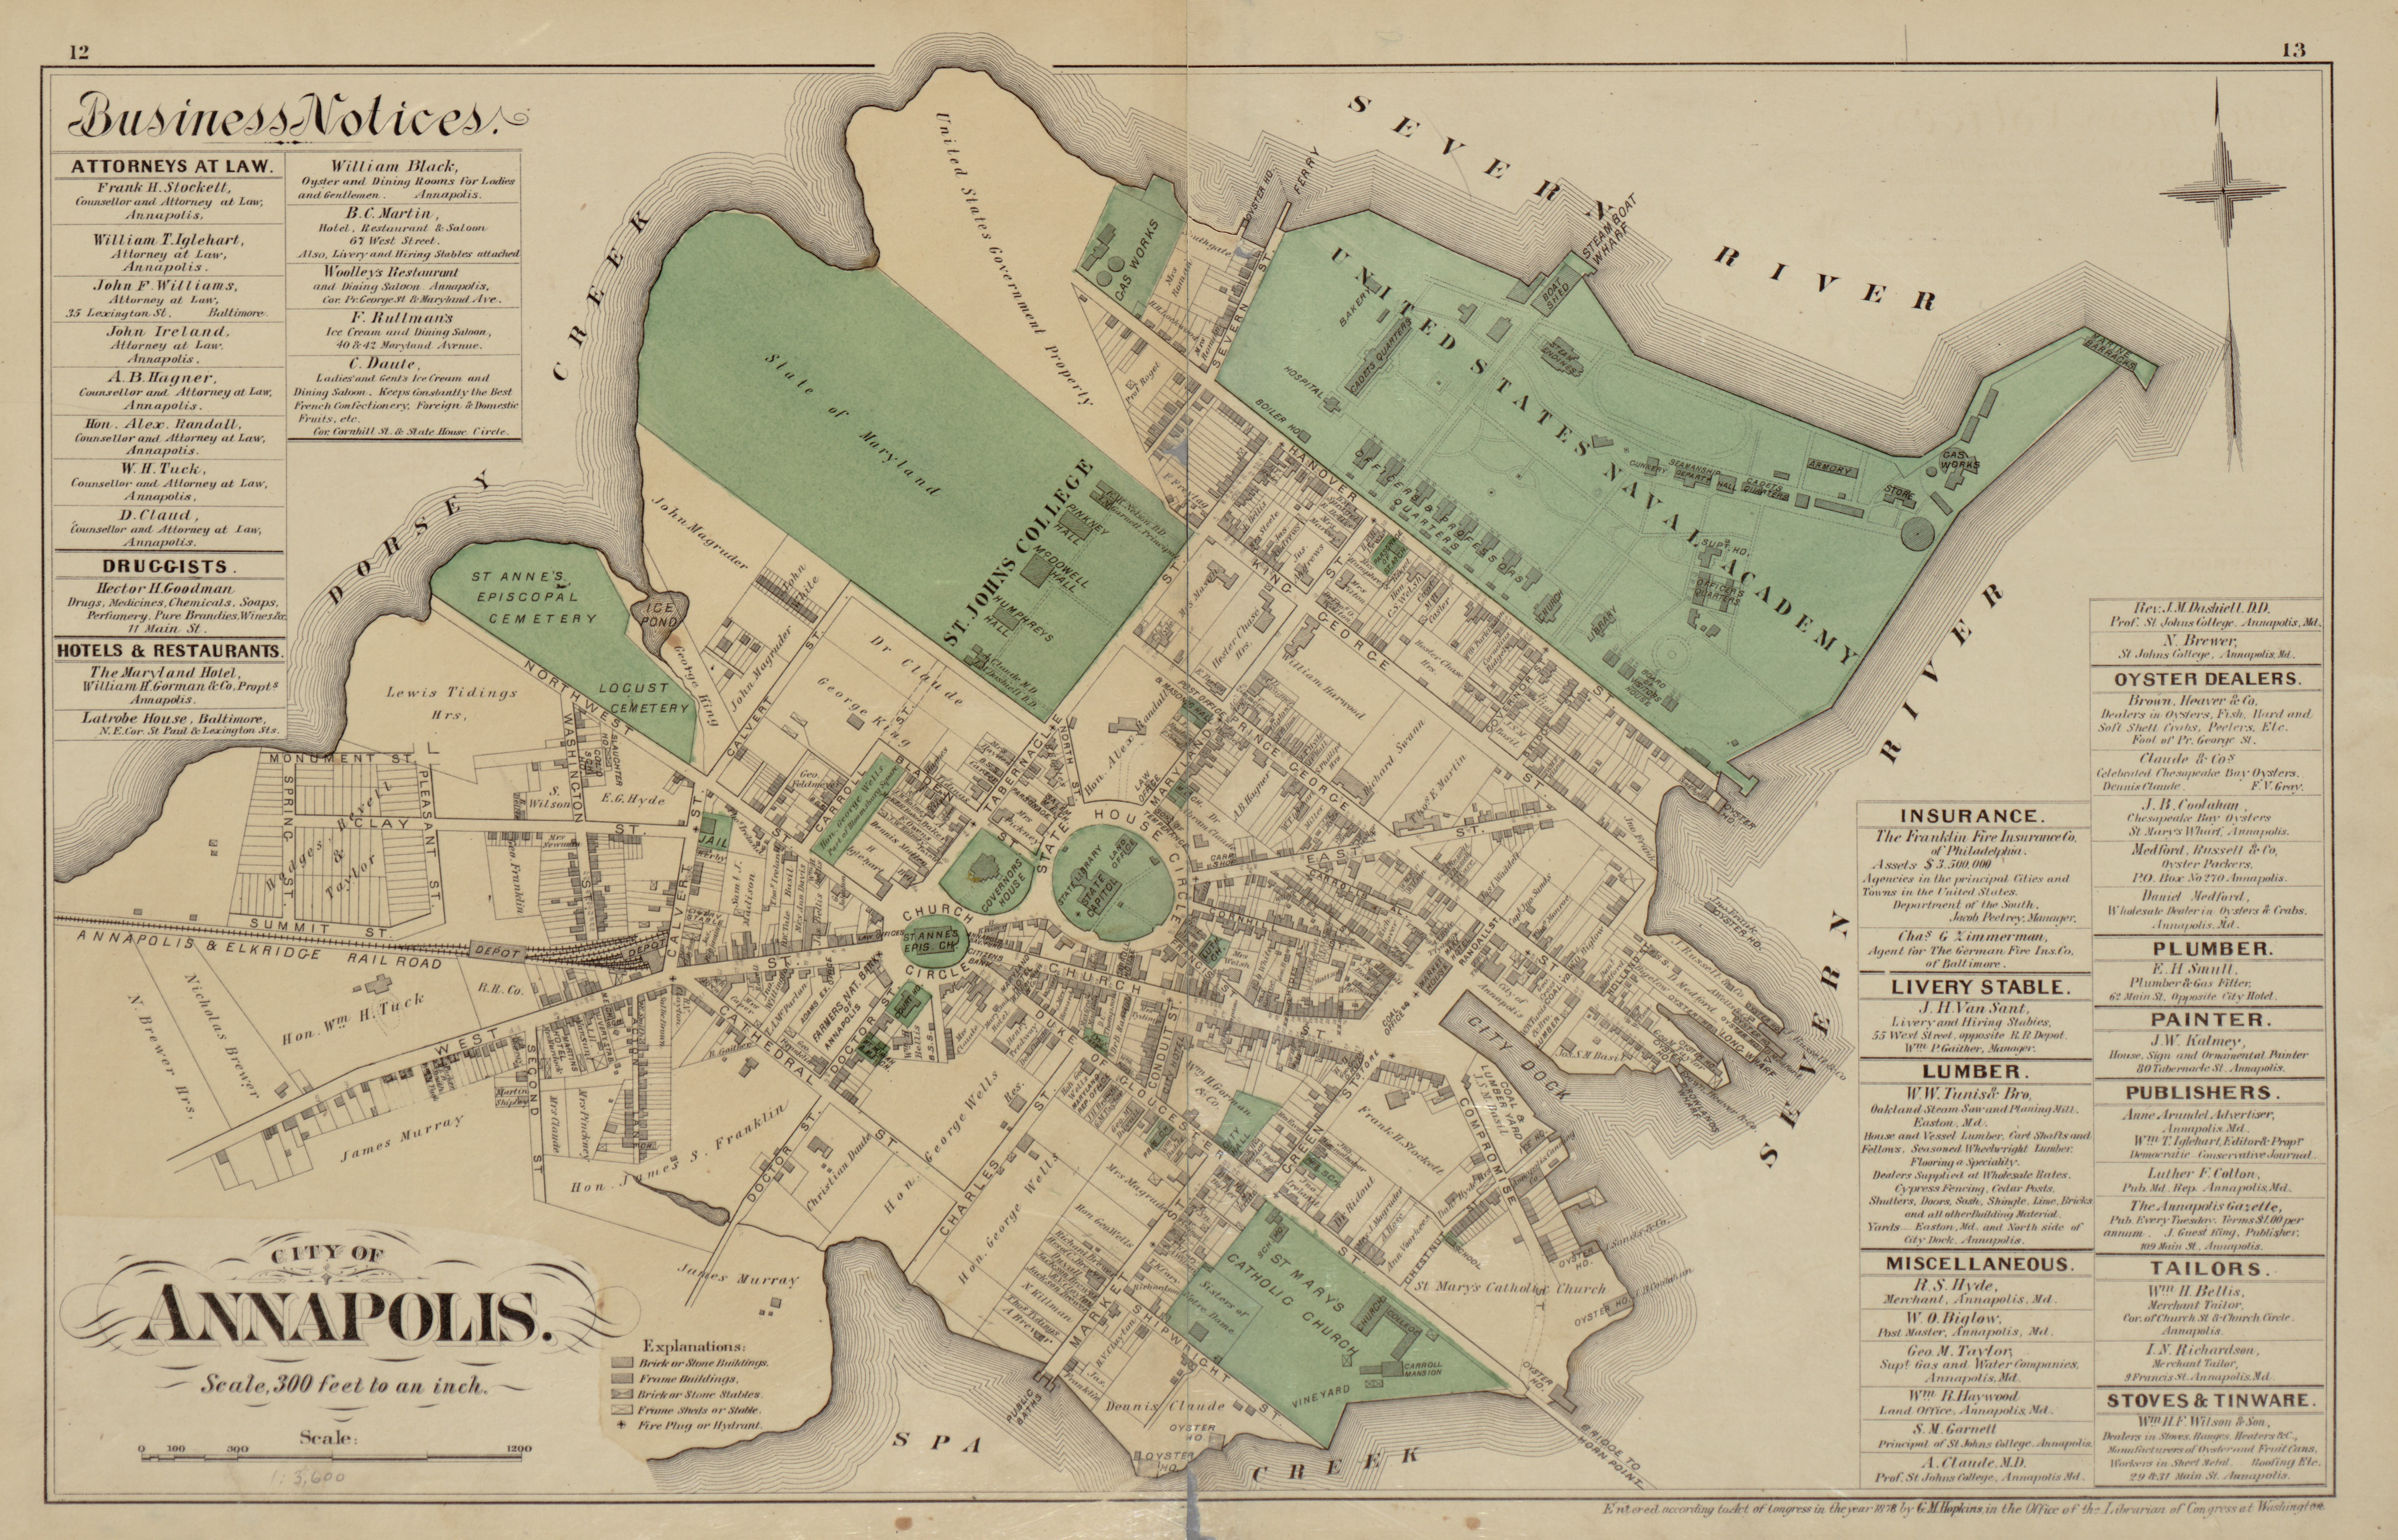 Get a Glimpse of Old Annapolis With This 19th Century Map